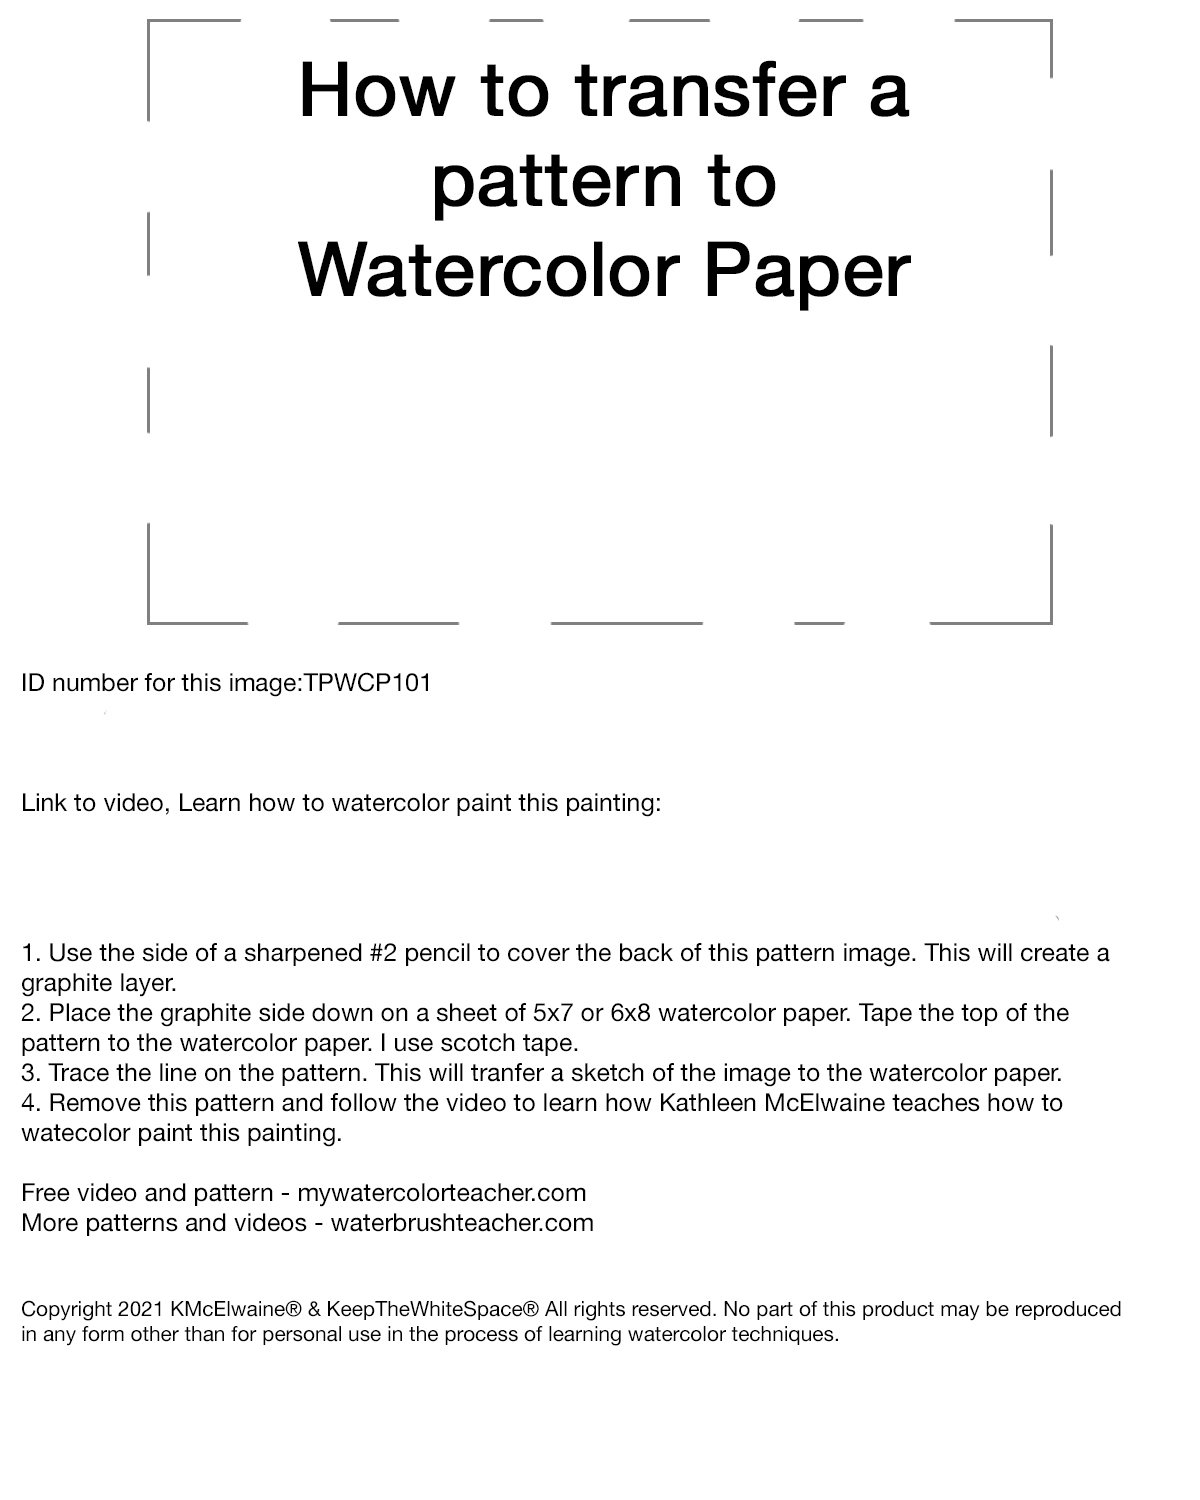 2nd How to transfer a pattern to watercolor paper TPWCP101